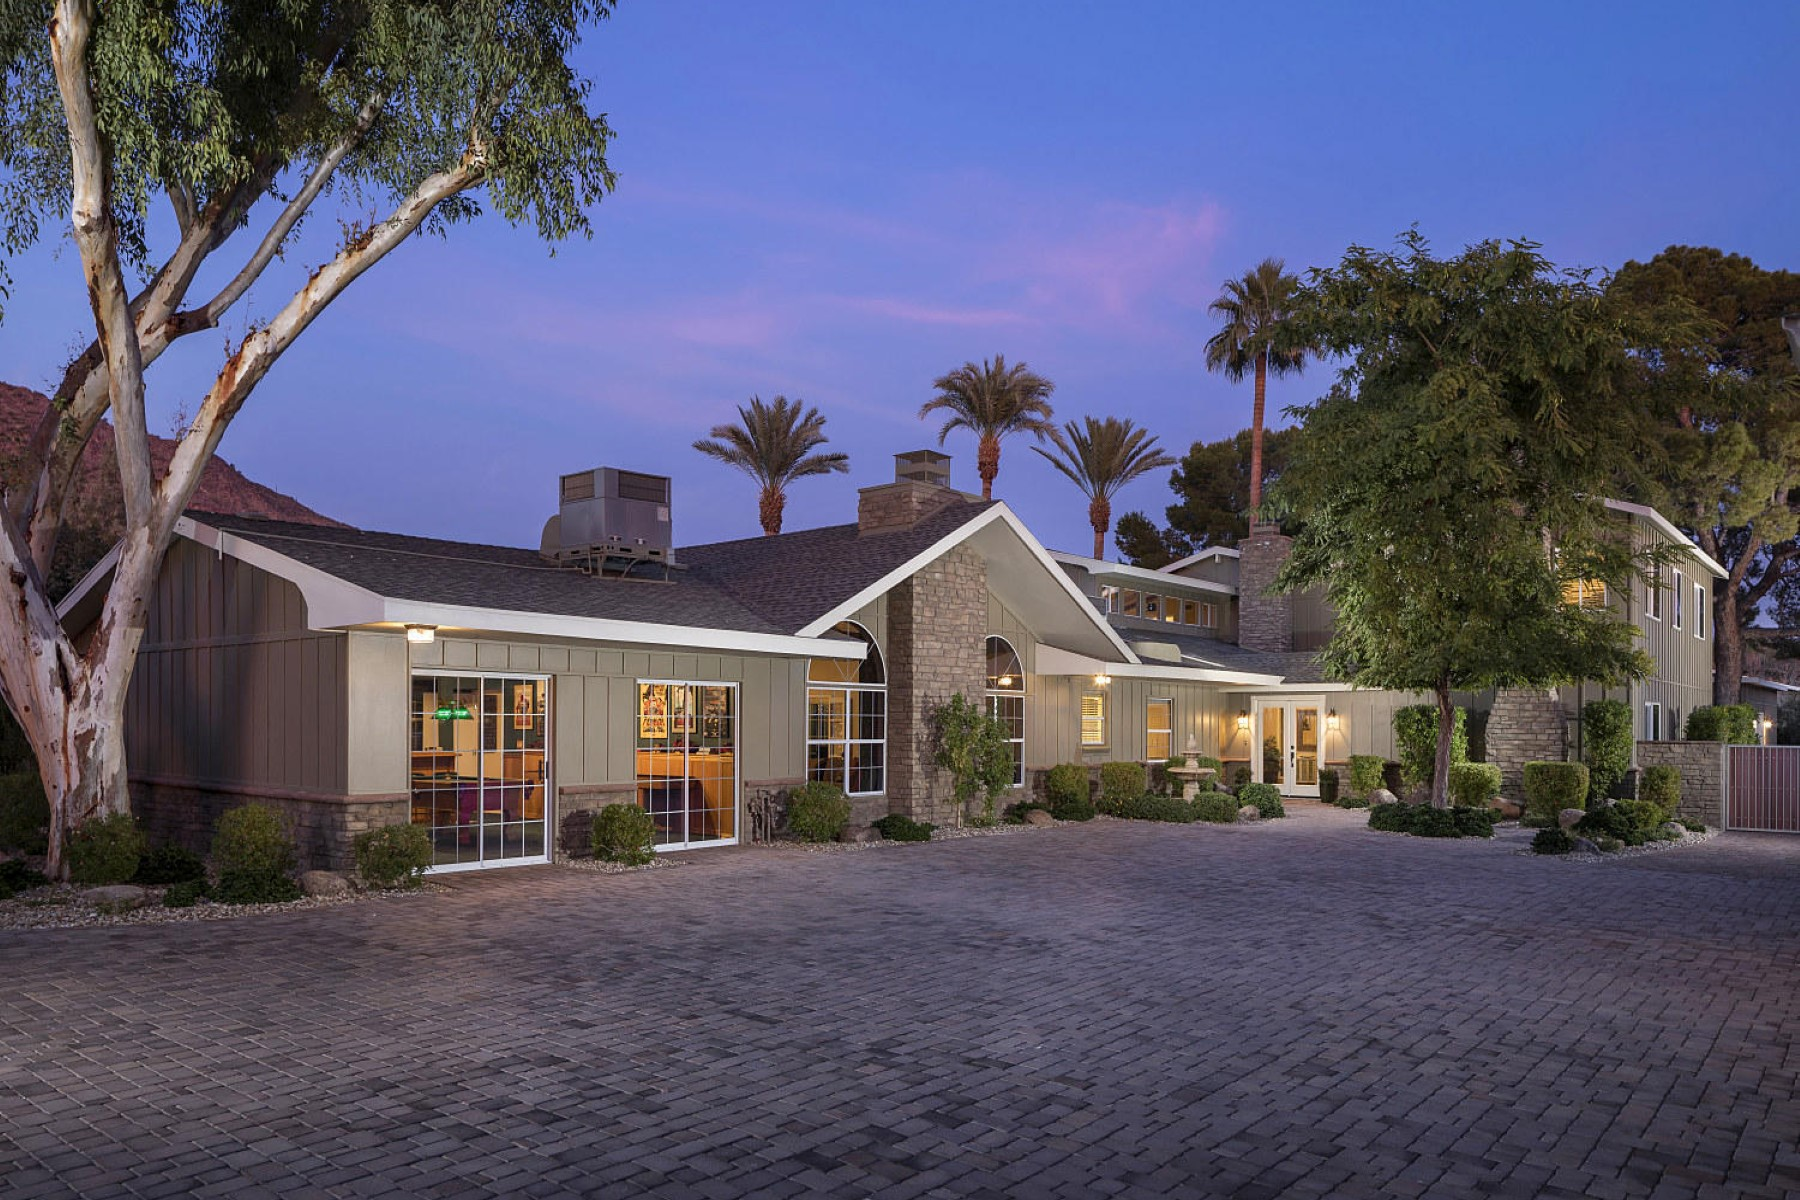 Single Family Home for Sale at Private gated Central Arcadia estate 4413 N Camino Allenada Rd. Phoenix, Arizona, 85018 United States